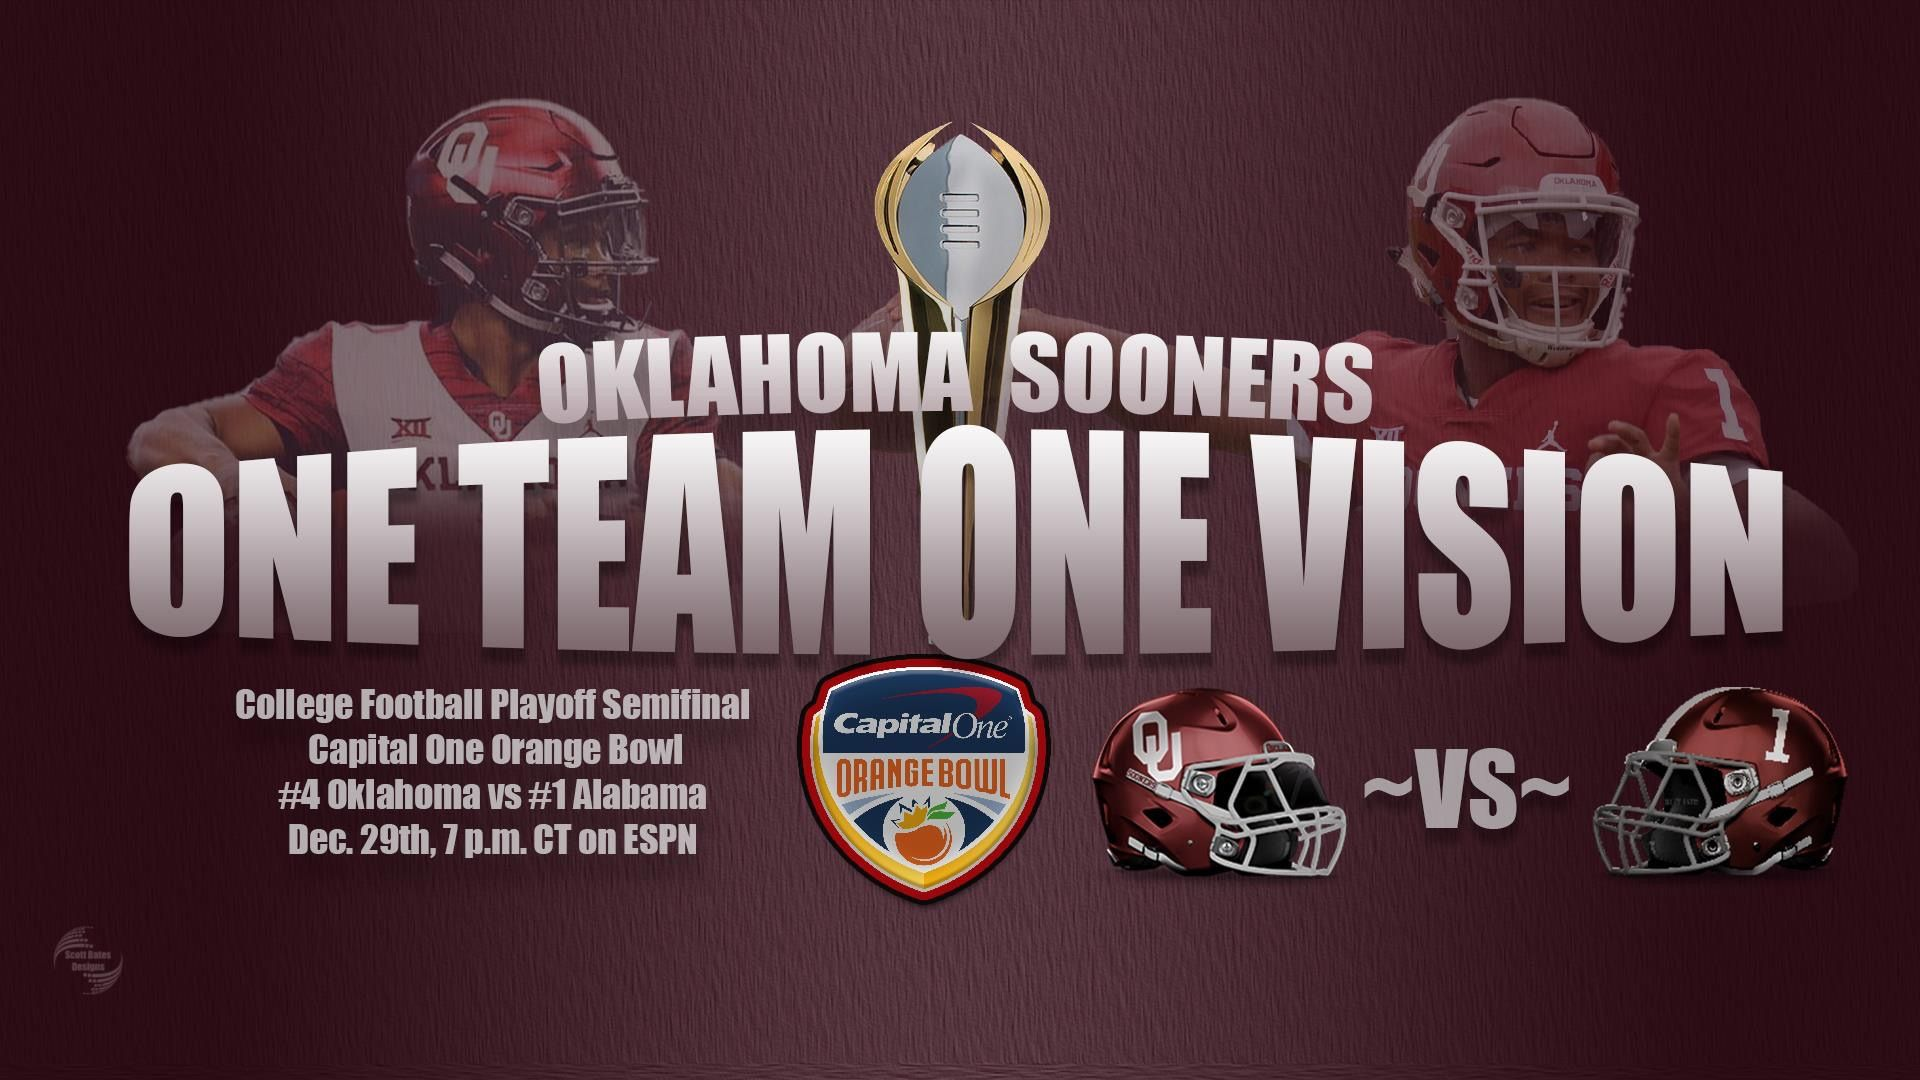 Pin By Kyle Burgess On Sooners Sooners College Football Playoff One Team